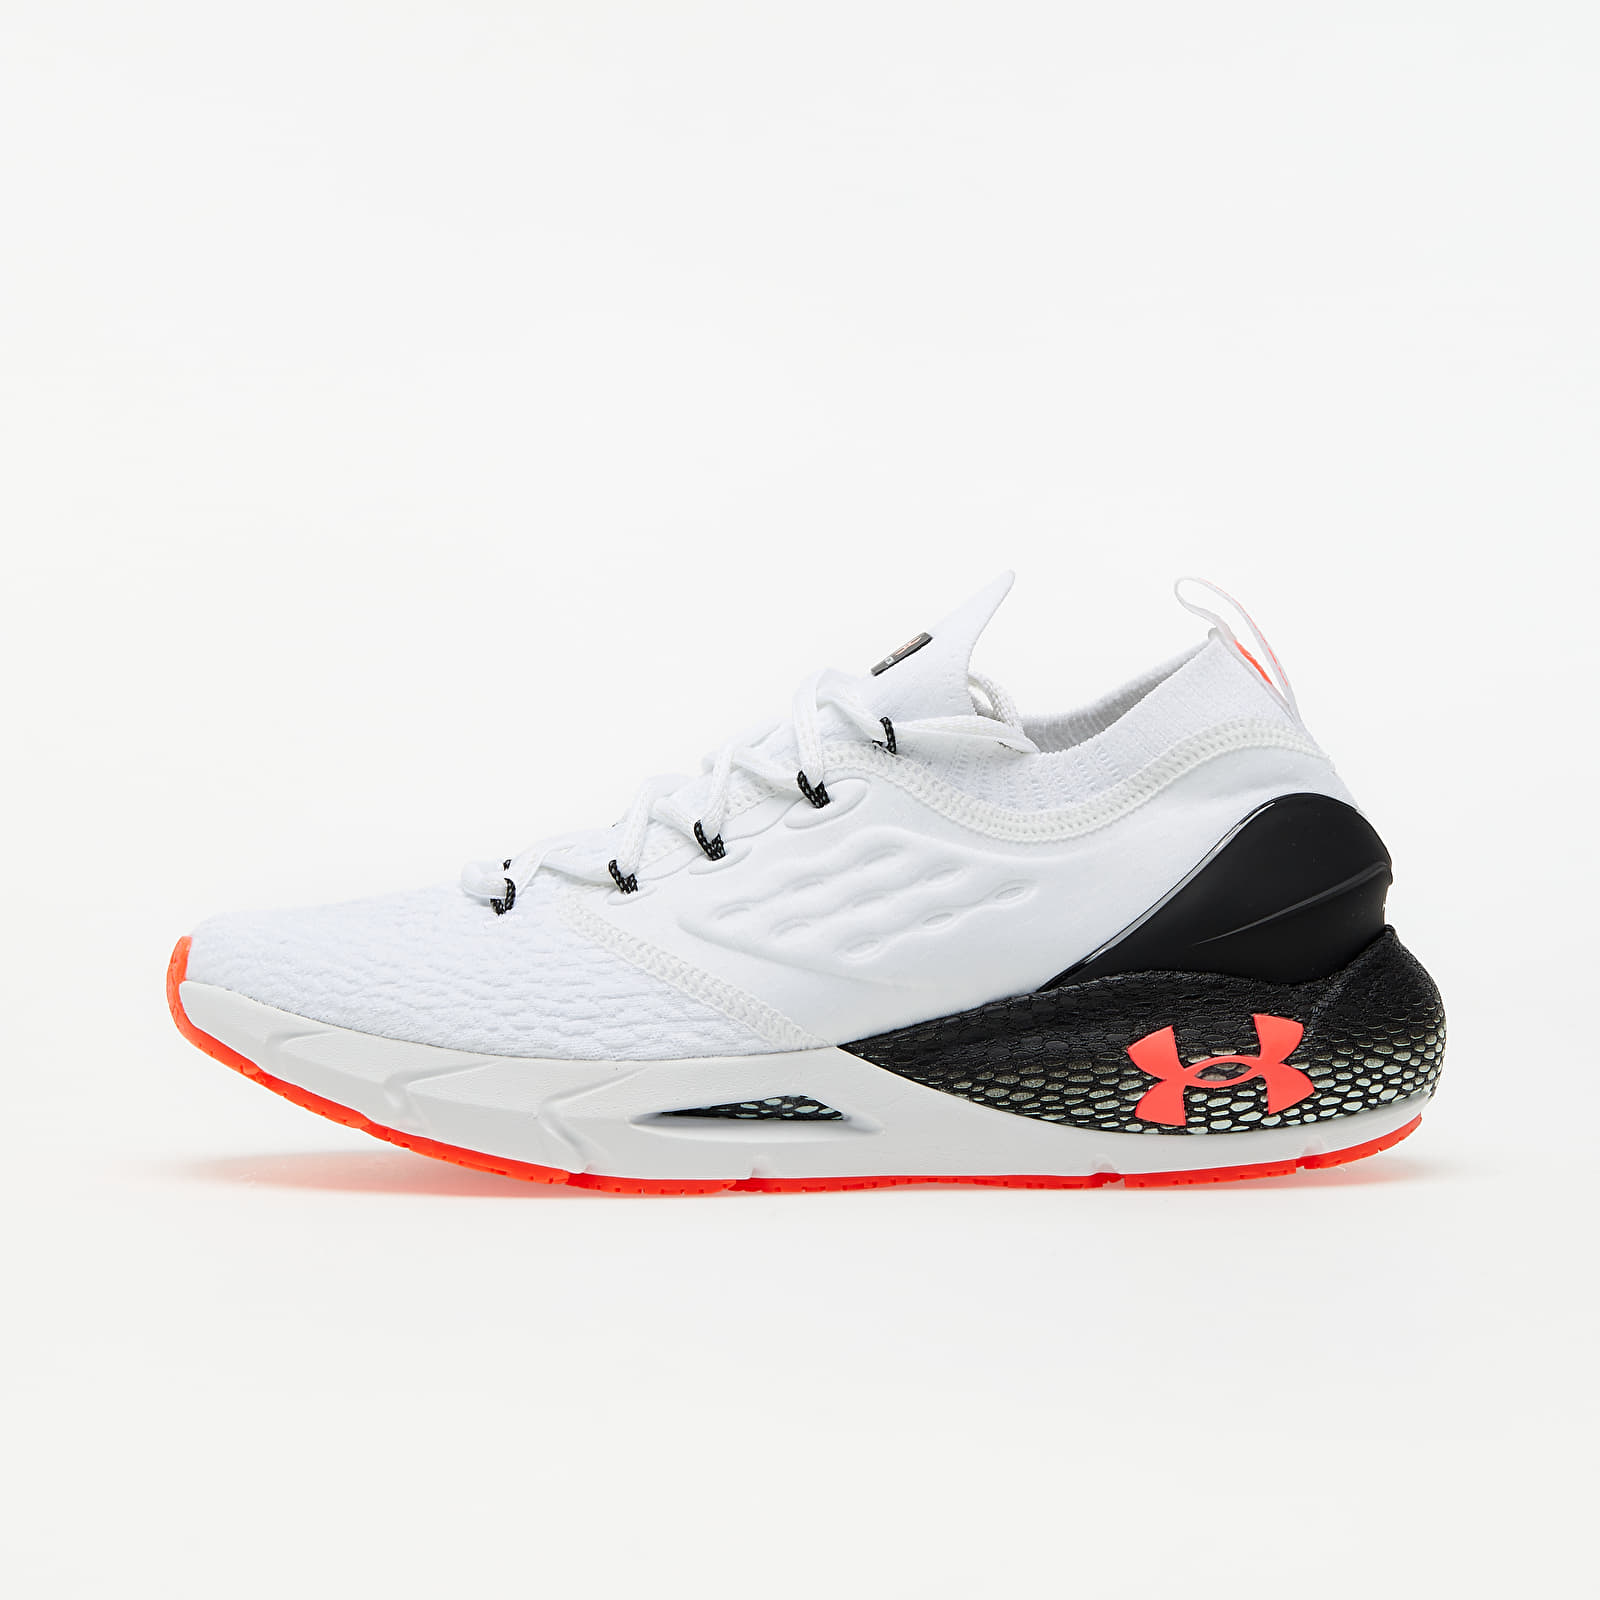 Chaussures et baskets homme Under Armour HOVR Phantom 2 Runanywr White/ Black